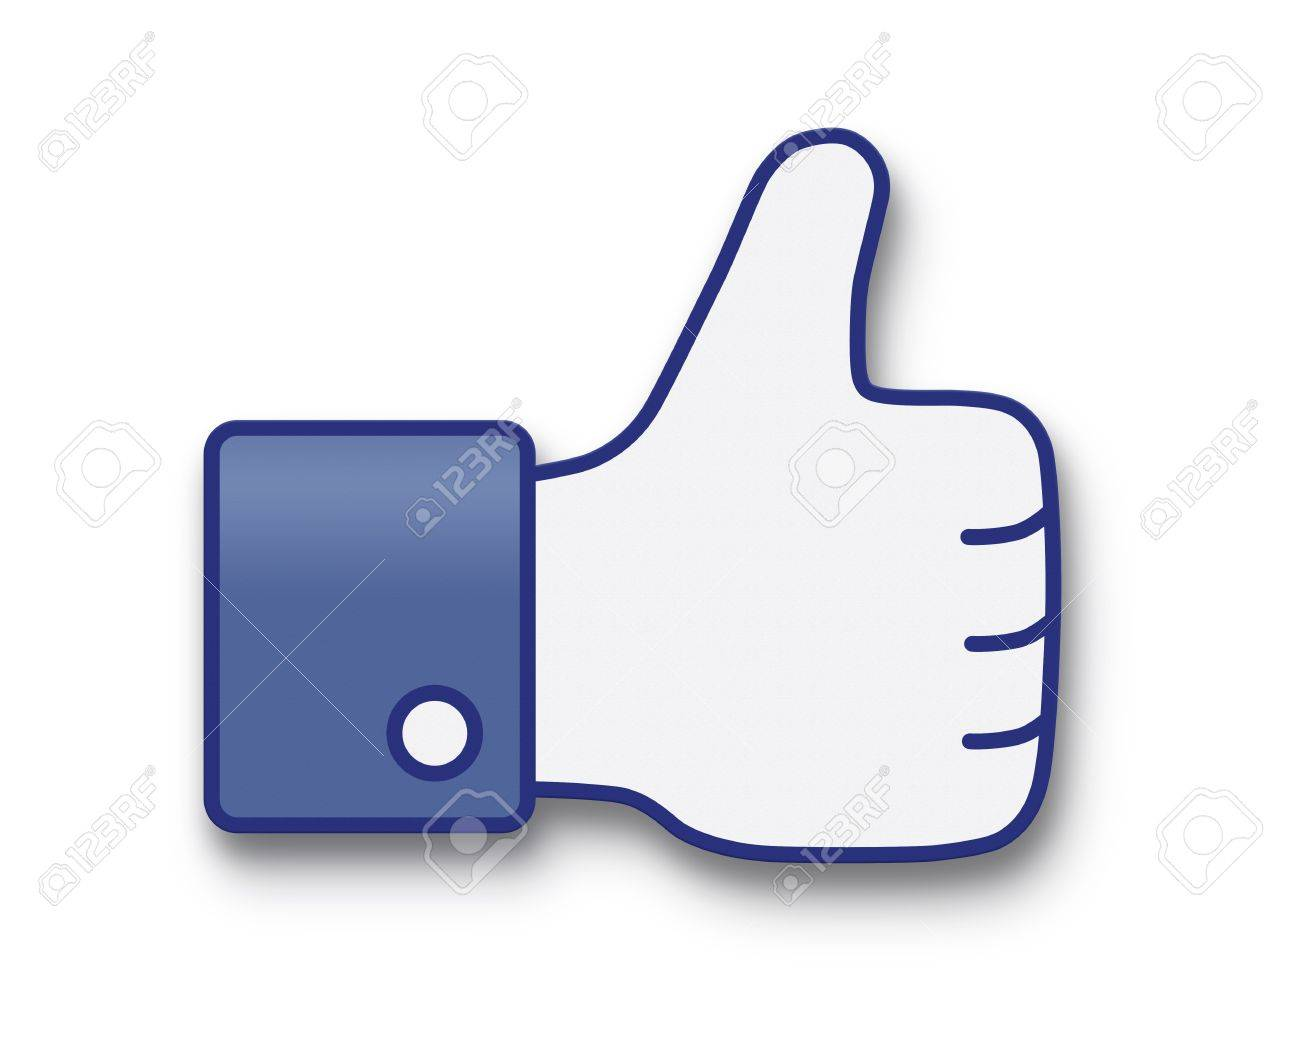 Thumbs up or like, paper icon Stock Photo - 15700352